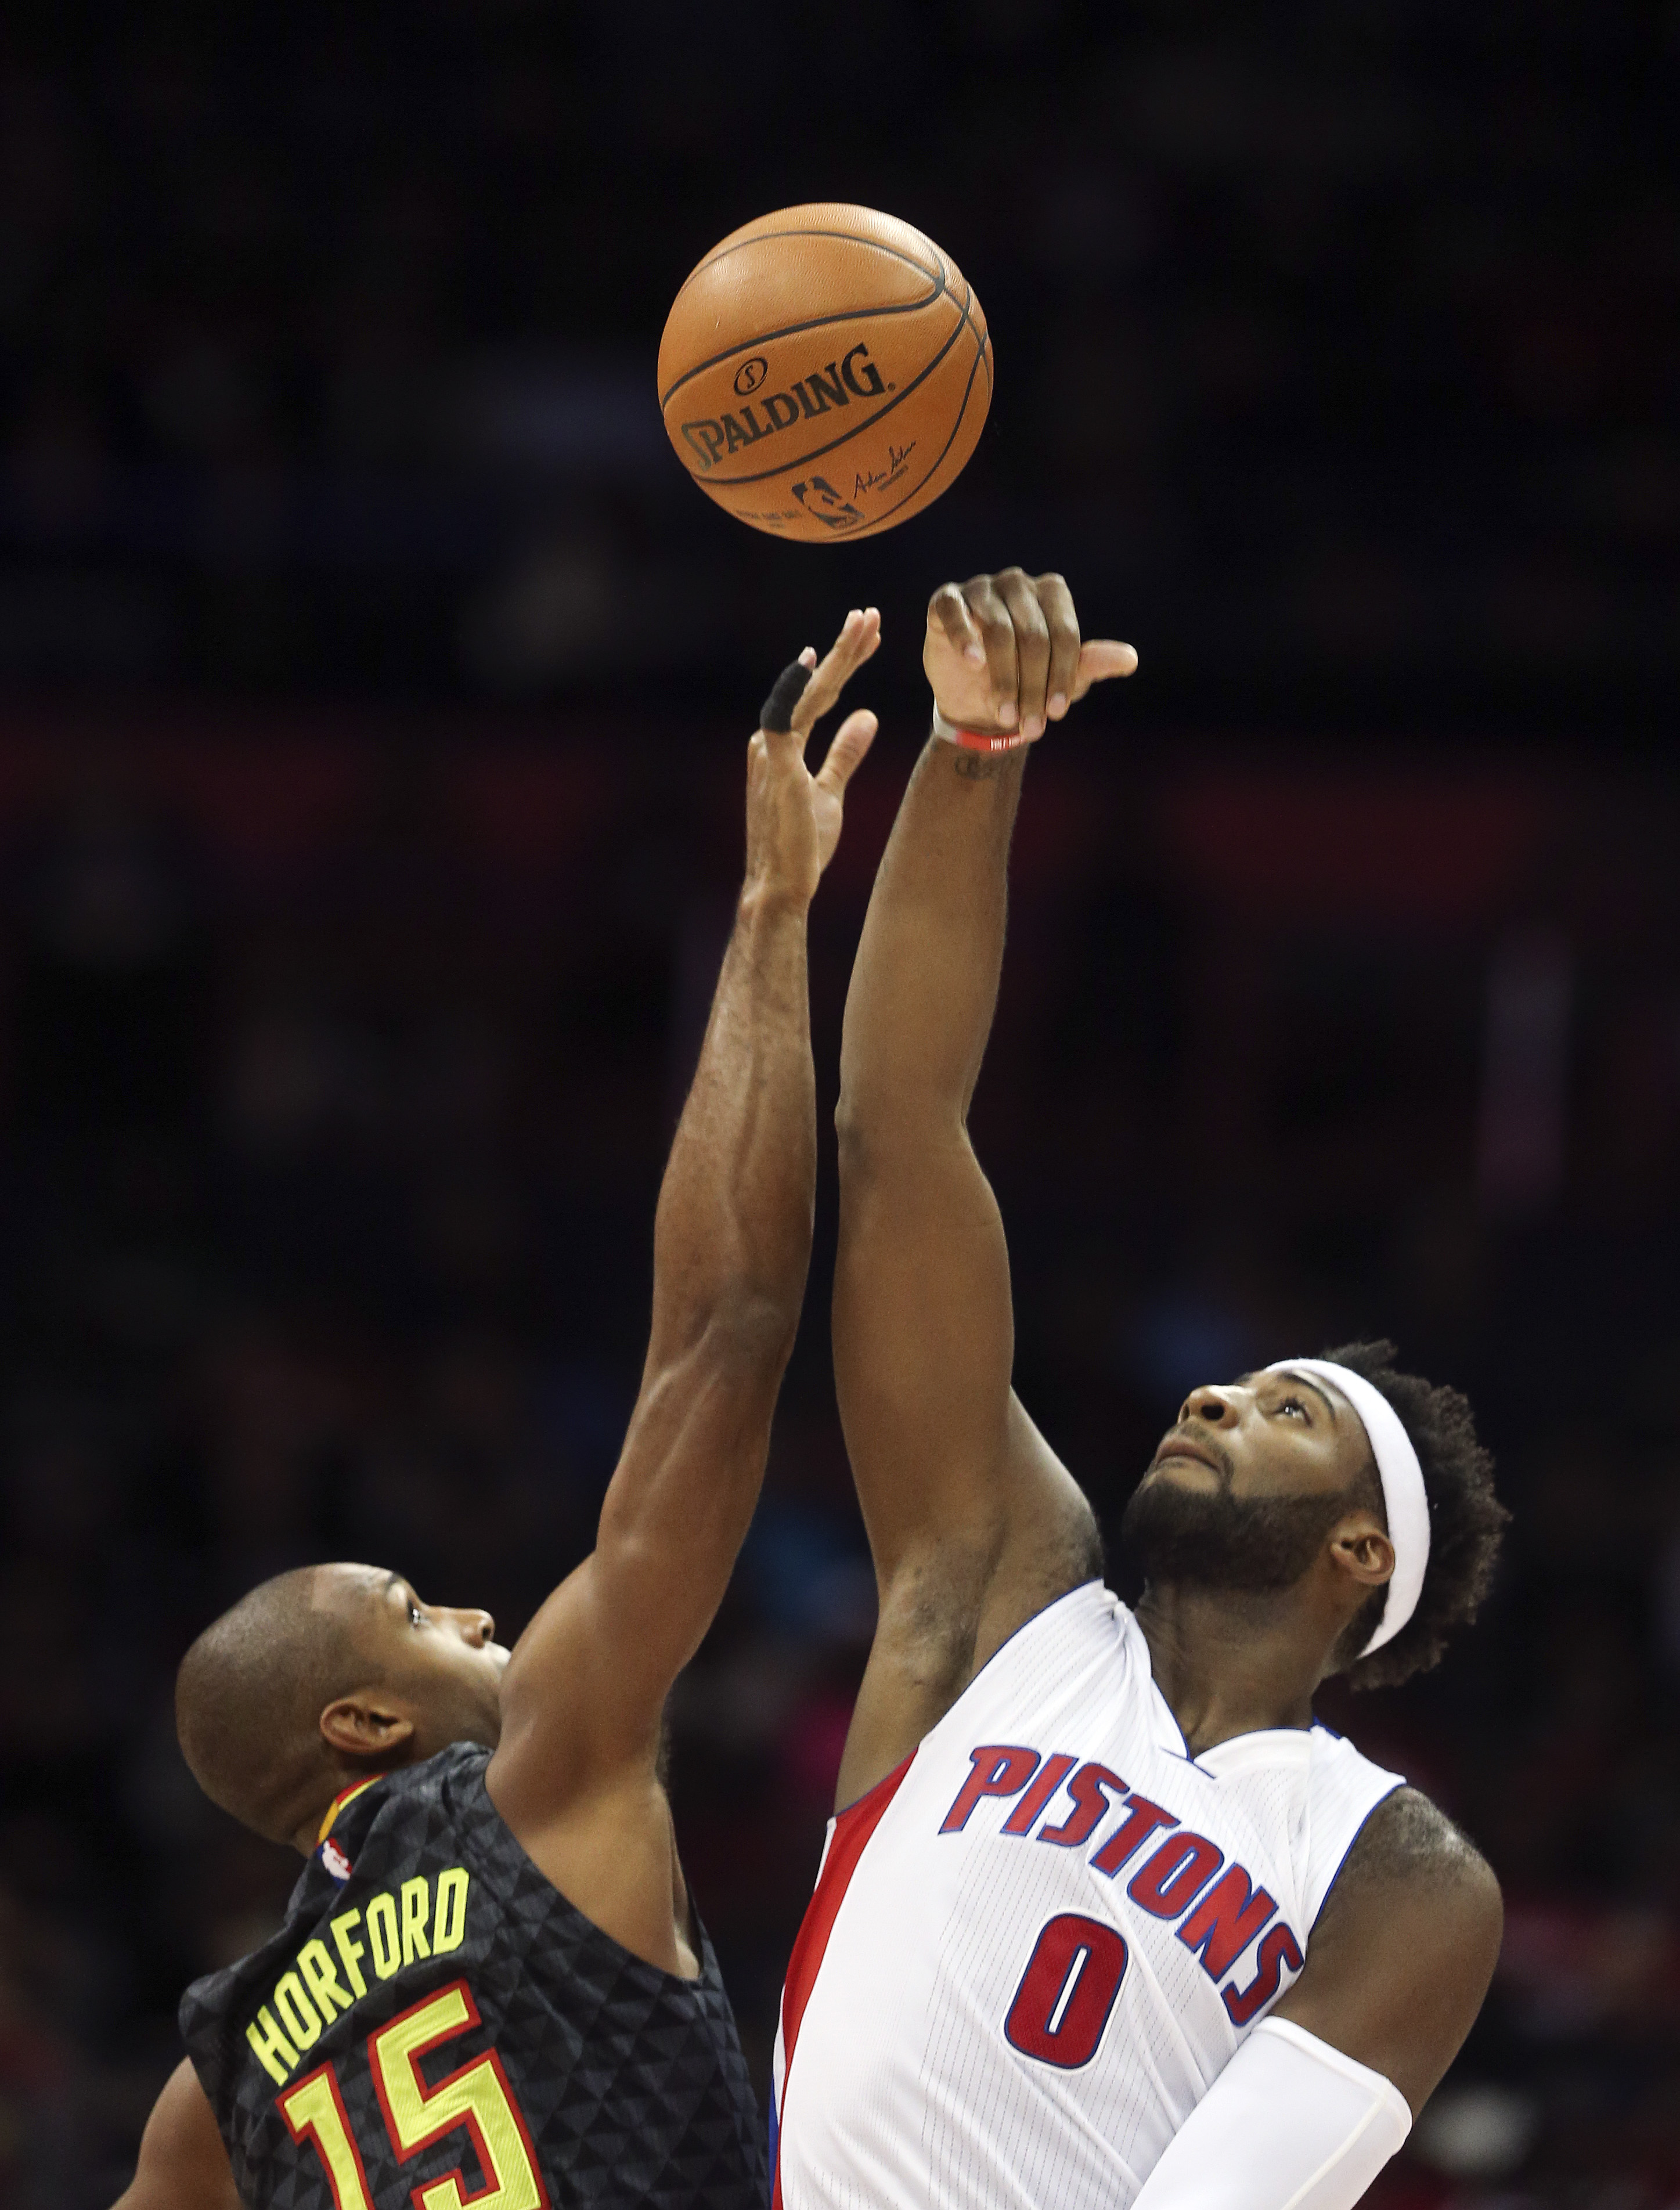 Atlanta Hawks forward Al Horford (15) and Detroit Pistons center Andre Drummond (0) battle for the opening tip during the first half of an NBA basketball game Tuesday, Oct. 27, 2015, in Atlanta. (AP Photo/ John Bazemore)